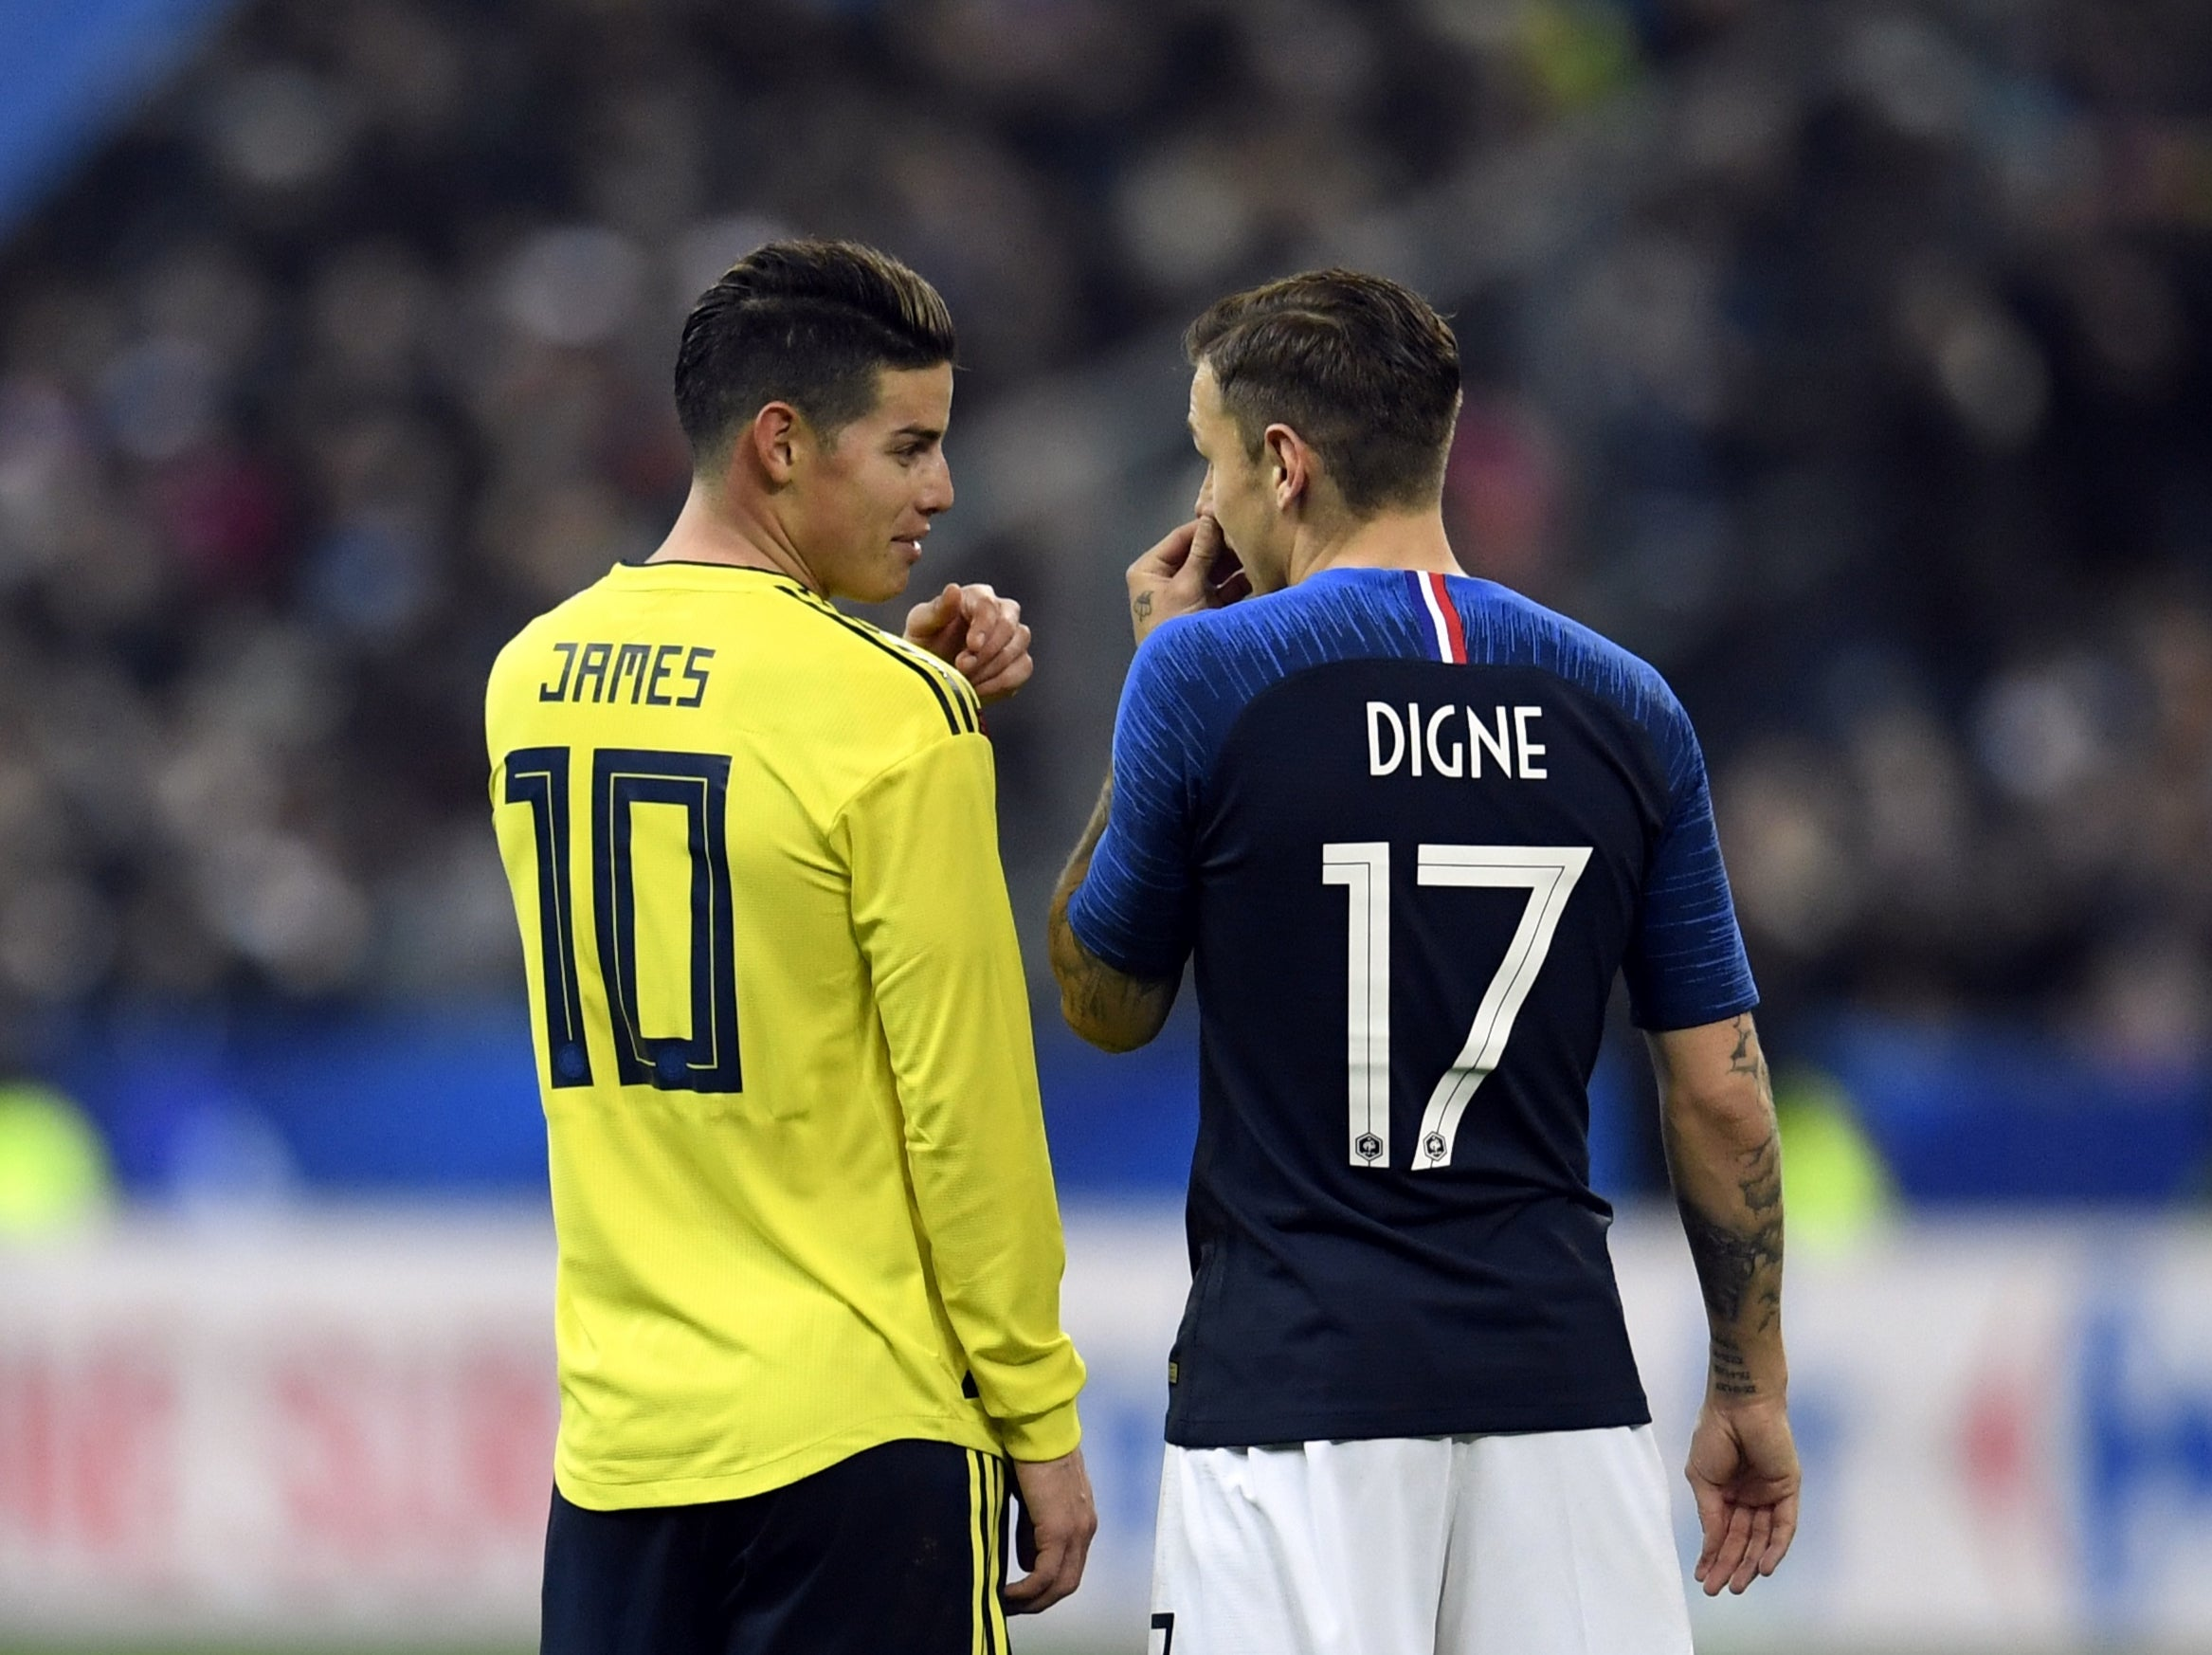 Everton S Lucas Digne Not Surprised By Impact Of World Class Arrivals James Rodriguez Allan And Abdoulaye Doucoure The Independent